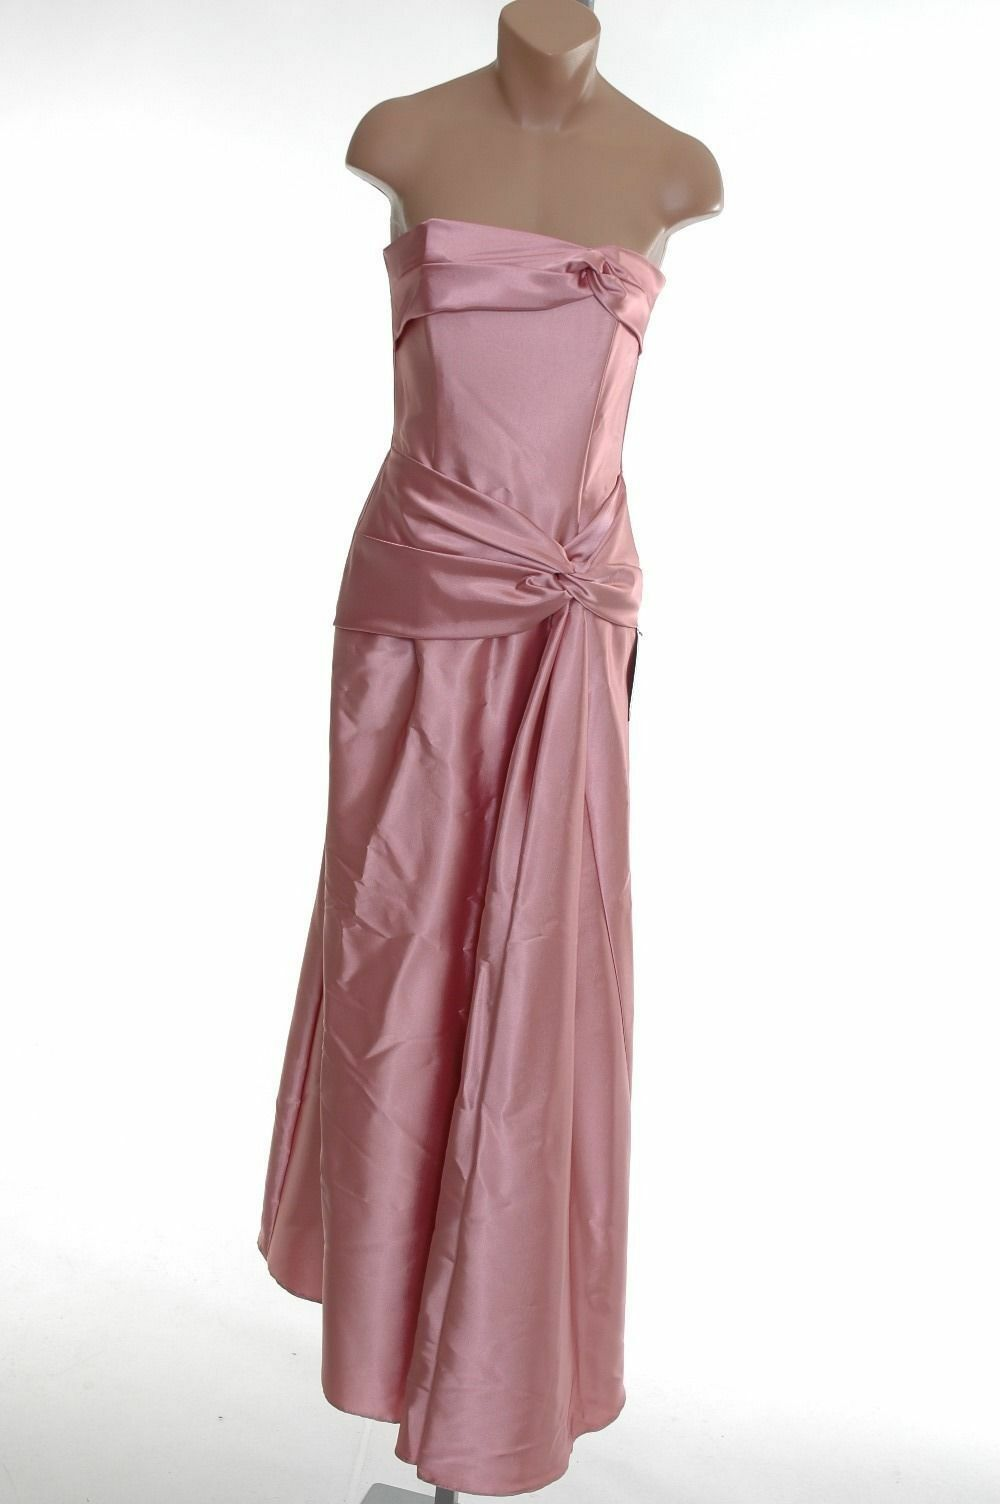 NWT JESSICA MCCLINTOCK wedding formal ocassion gown made in USA sz 12